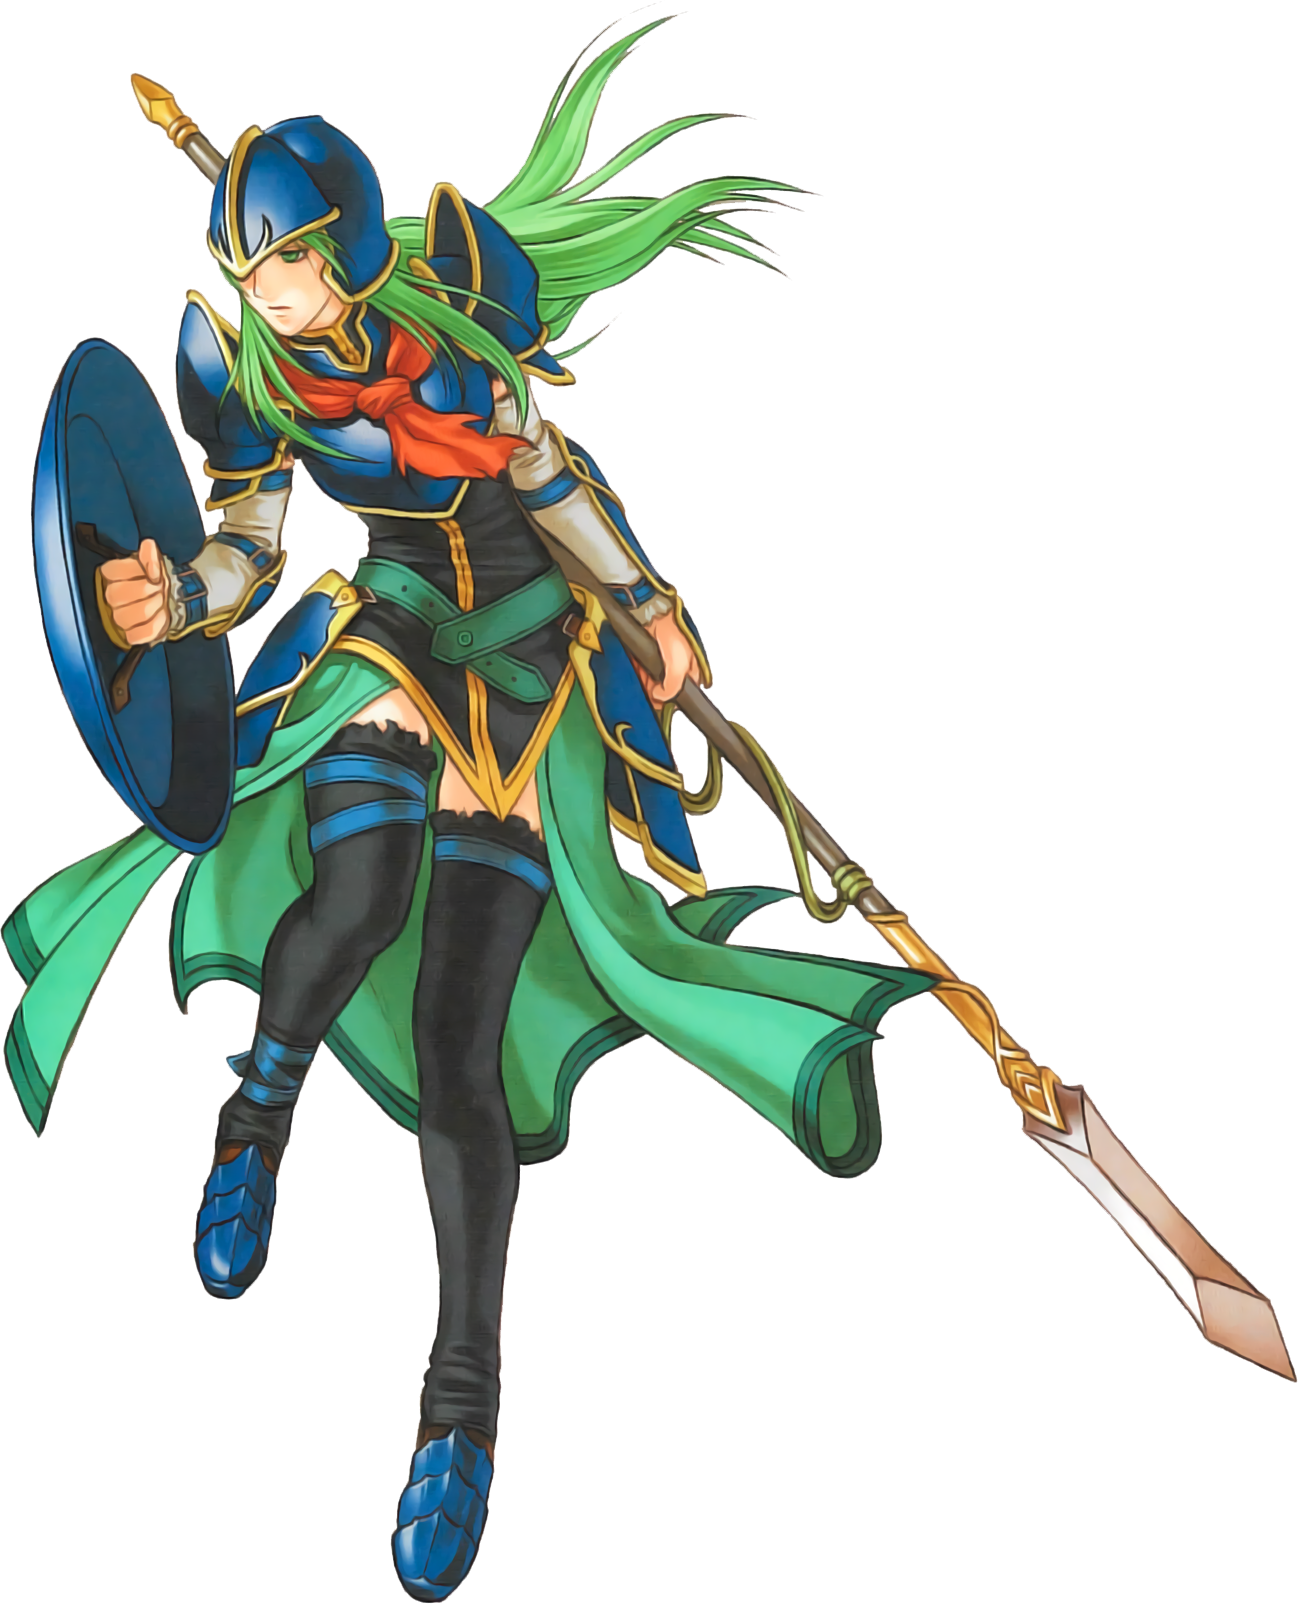 FE10 Nephenee Artwork